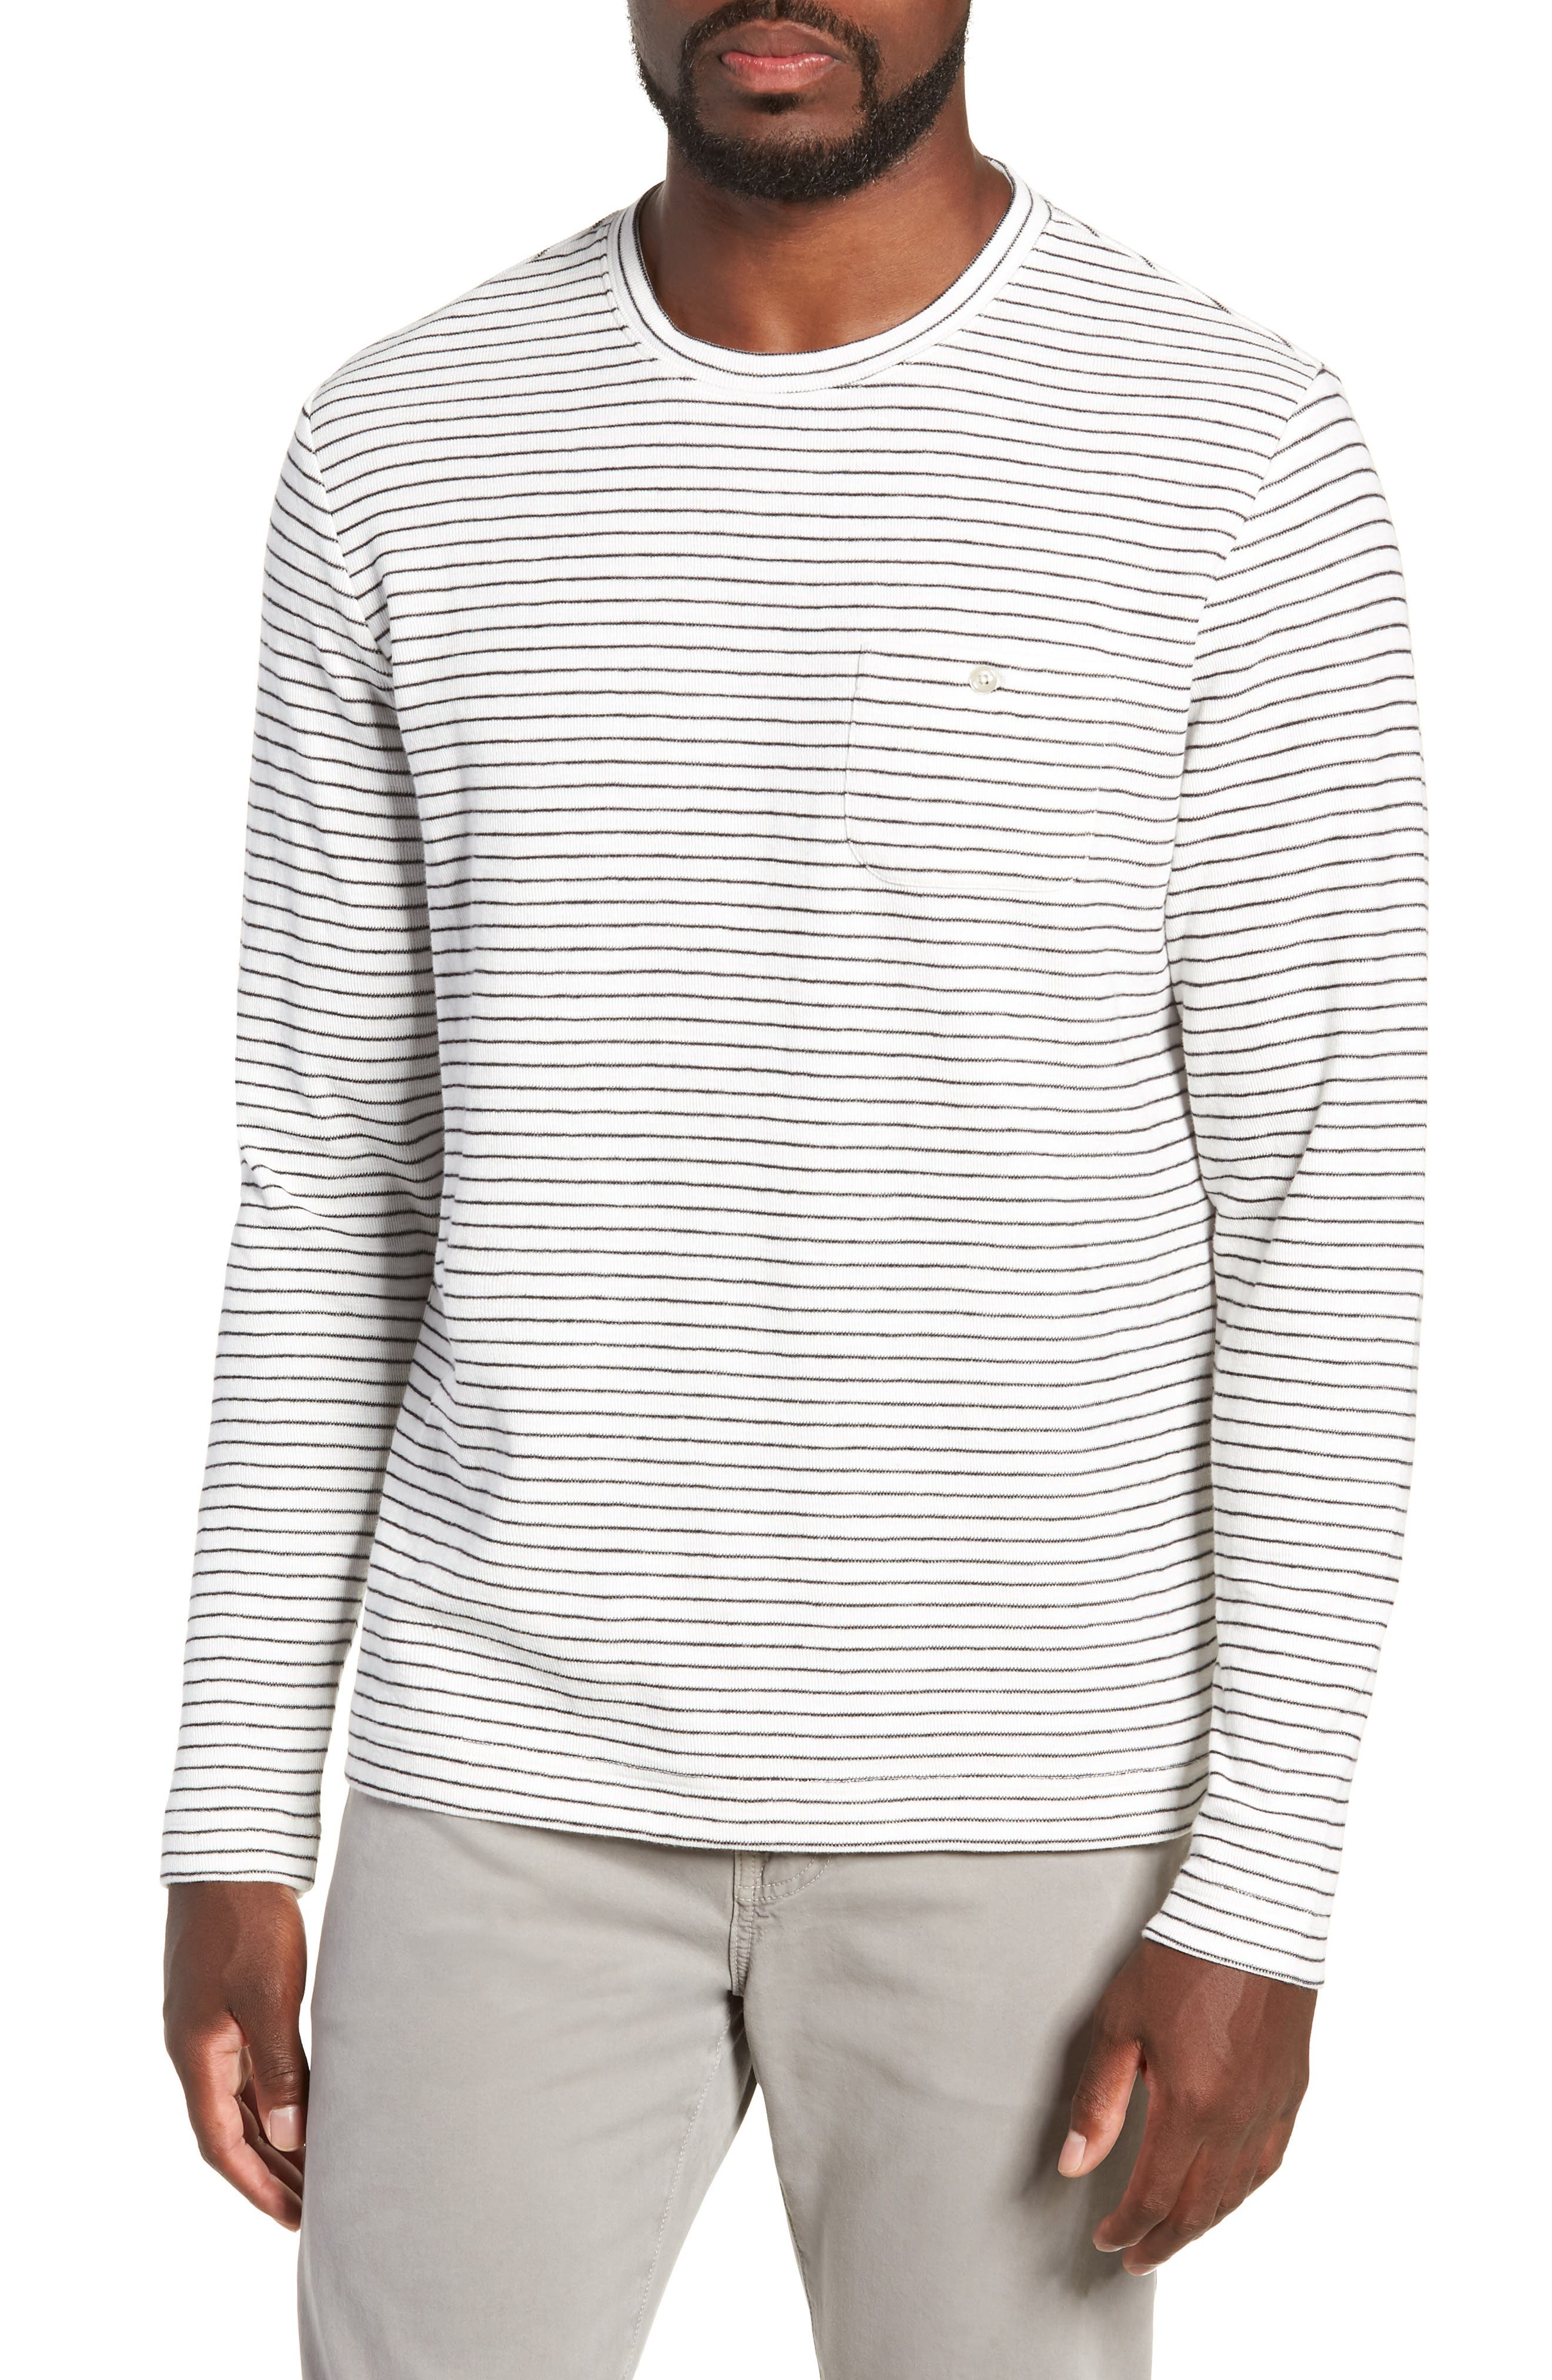 MICHAEL BASTIAN Stripe Long Sleeve Pocket T-Shirt in Natural